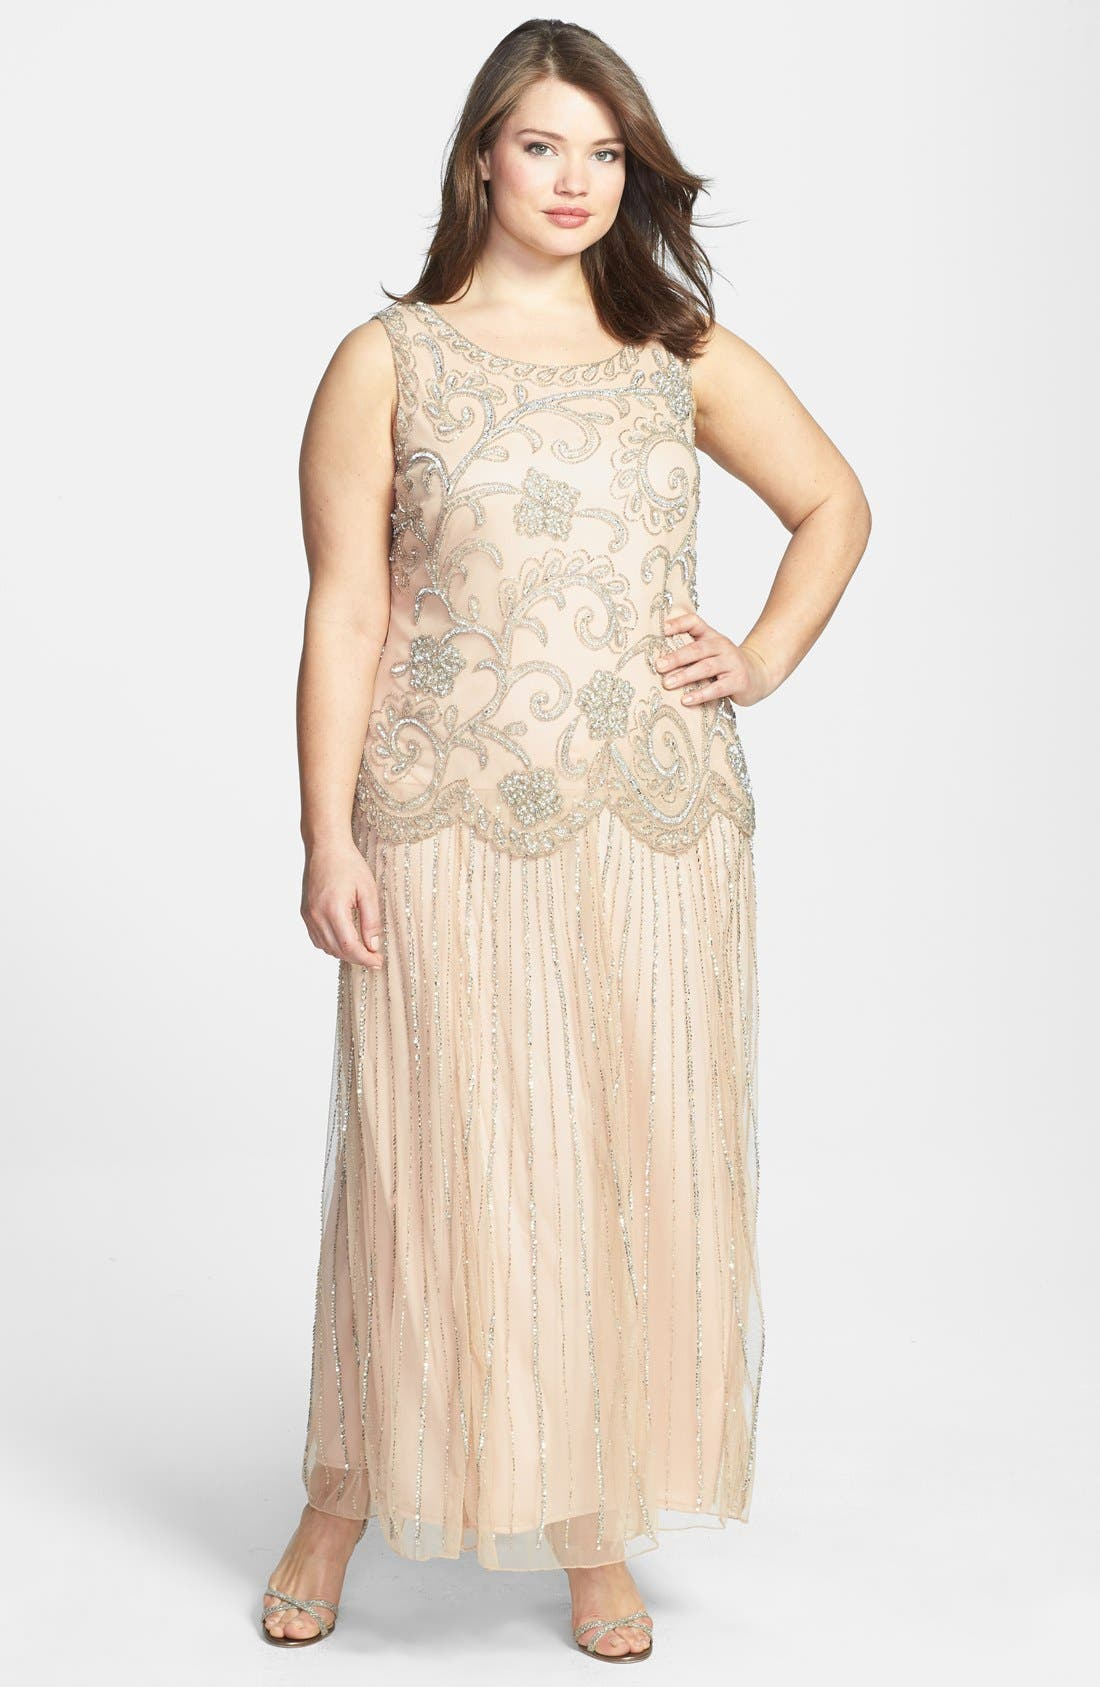 Alternate Image 1 Selected - Pisarro Nights Beaded Mesh Dress (Plus Size)